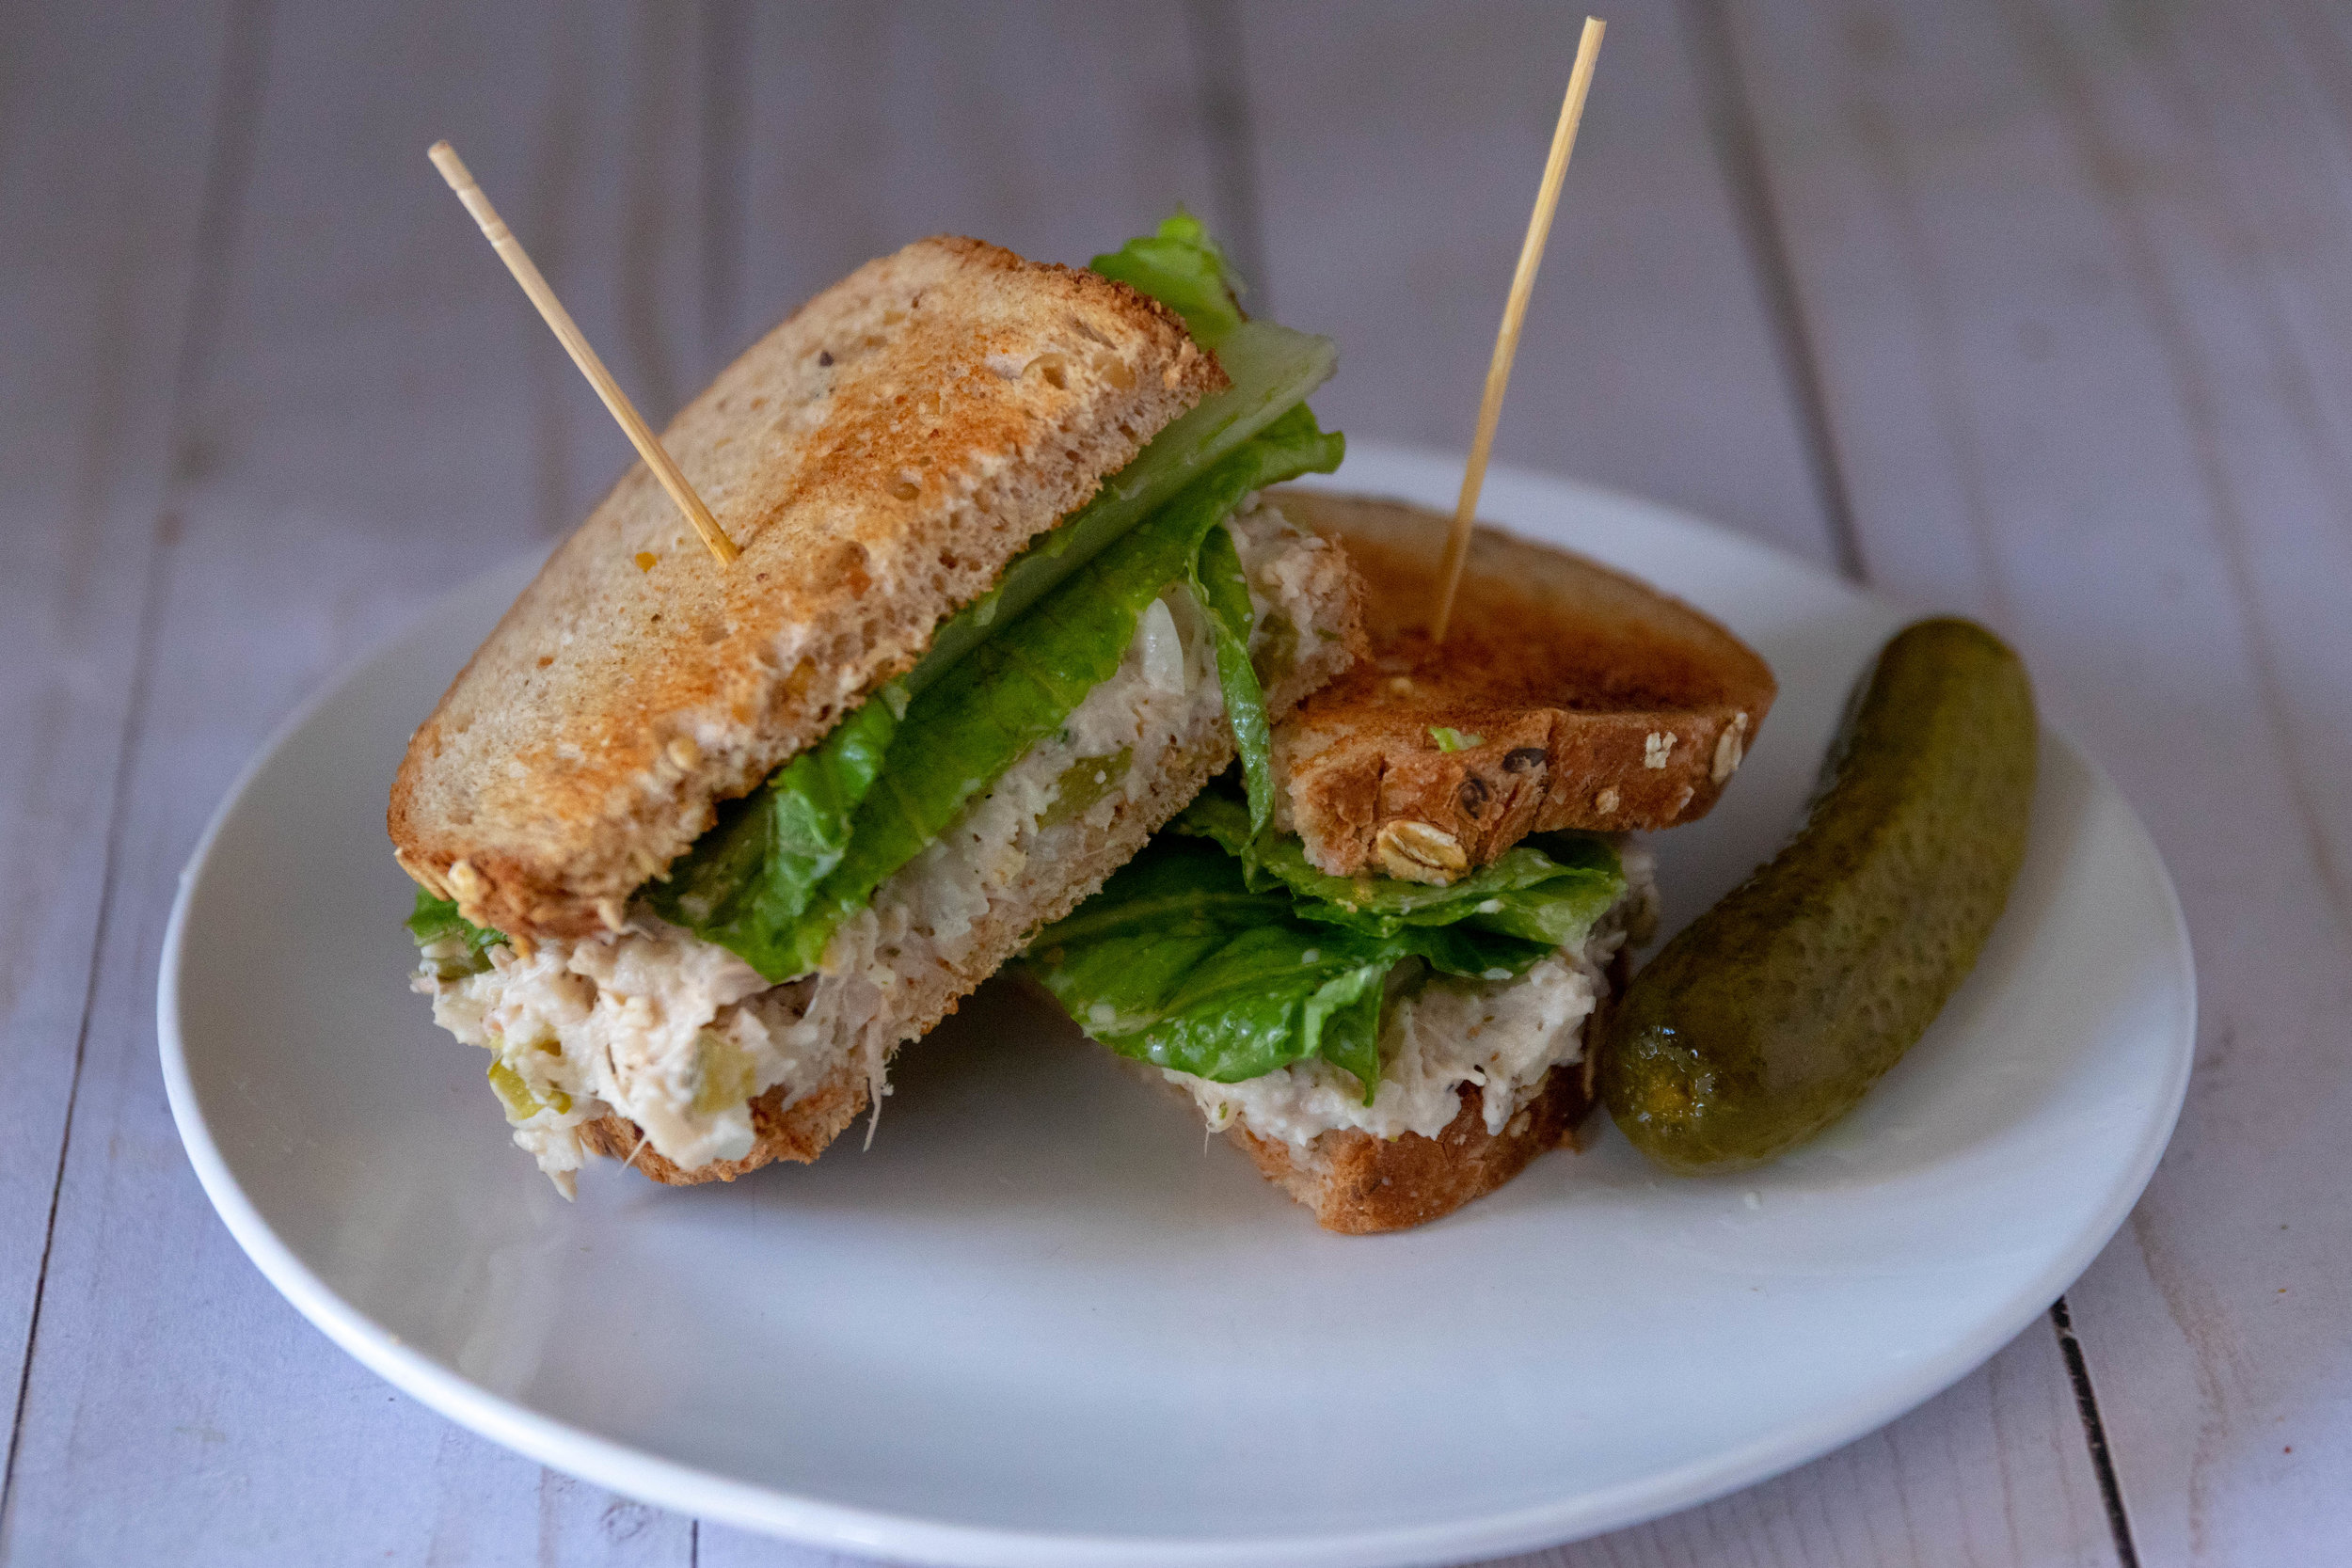 Jackfruit Tuna Salad Sandwich cut in half